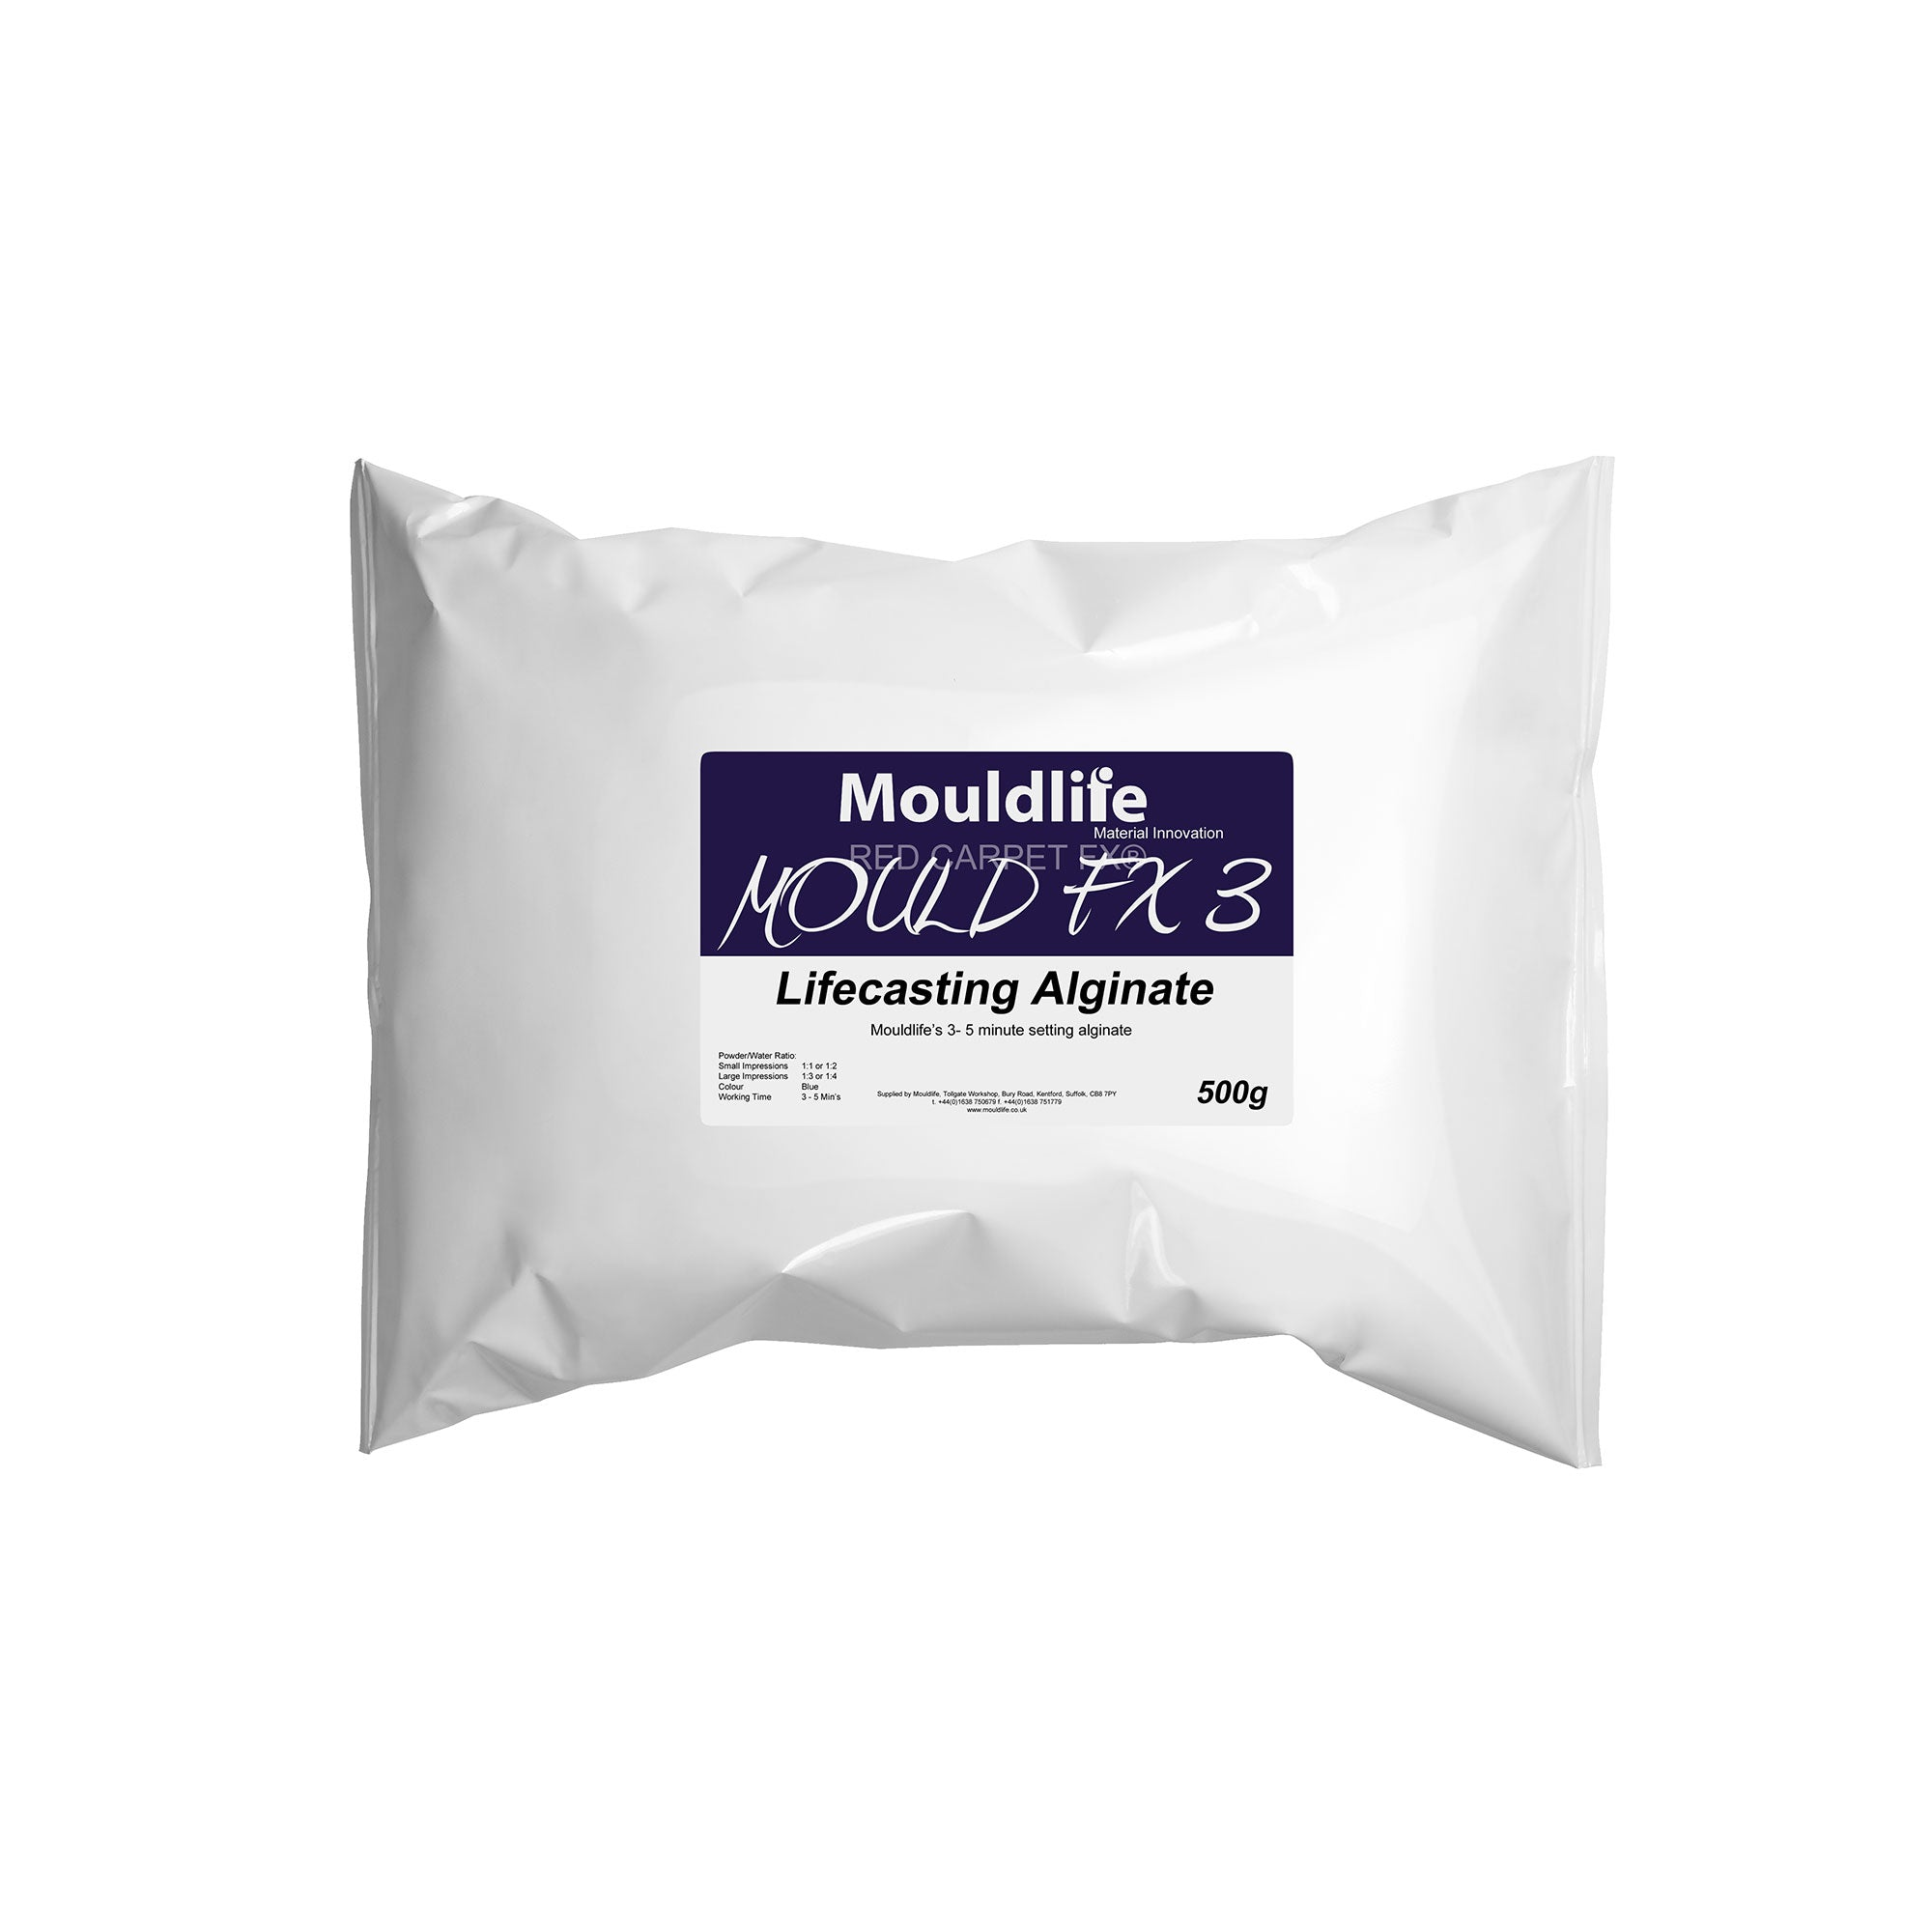 Mouldlife Mould FX Alginate 3 (Regular Set) - Red Carpet FX - Professional Makeup